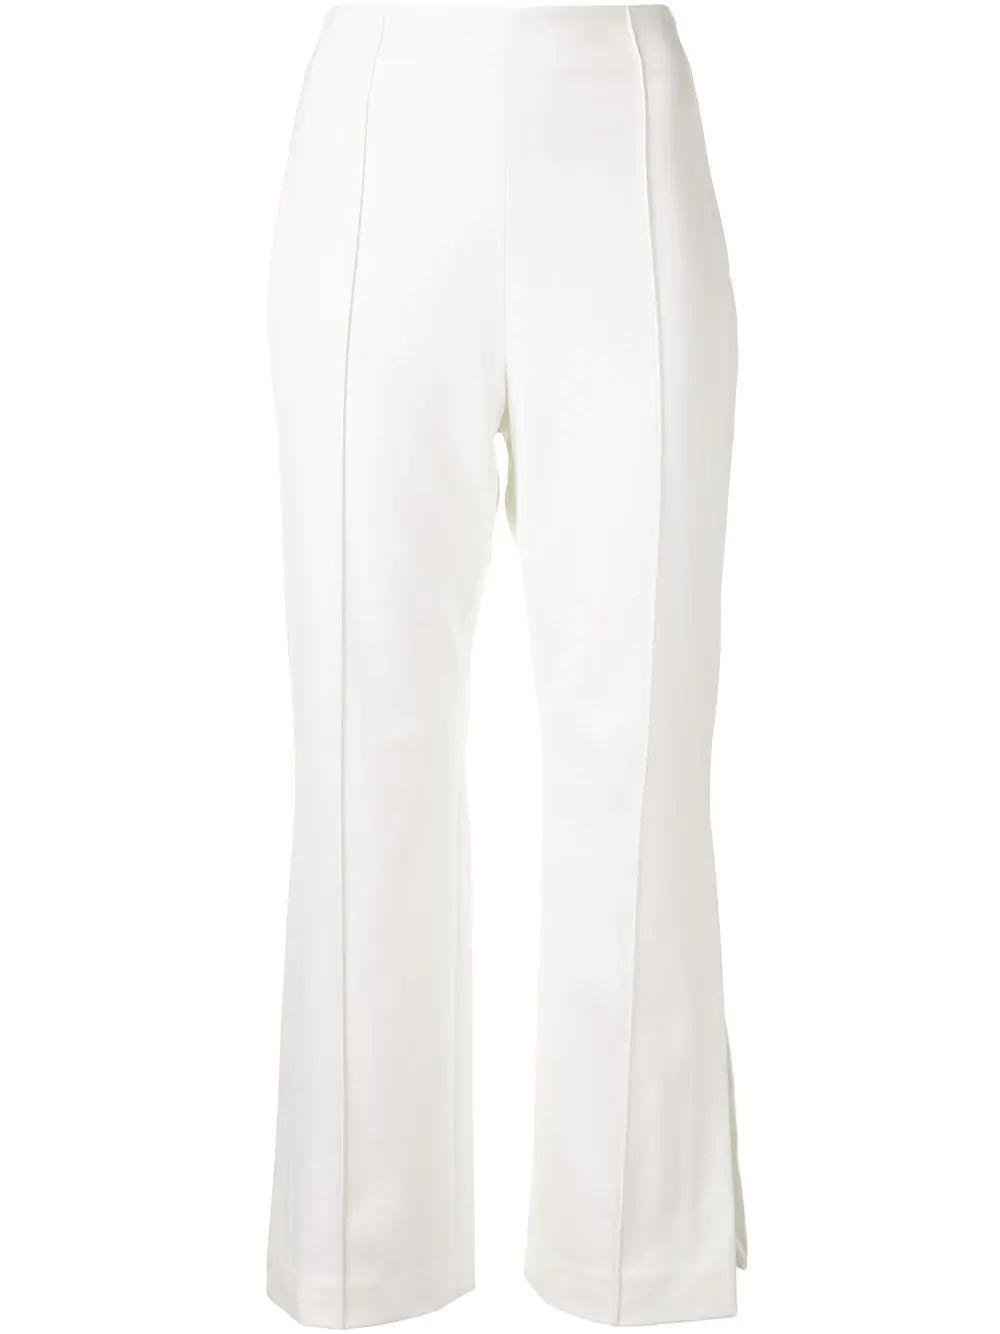 Jas Cropped Flare Pant With Side Slit Lace